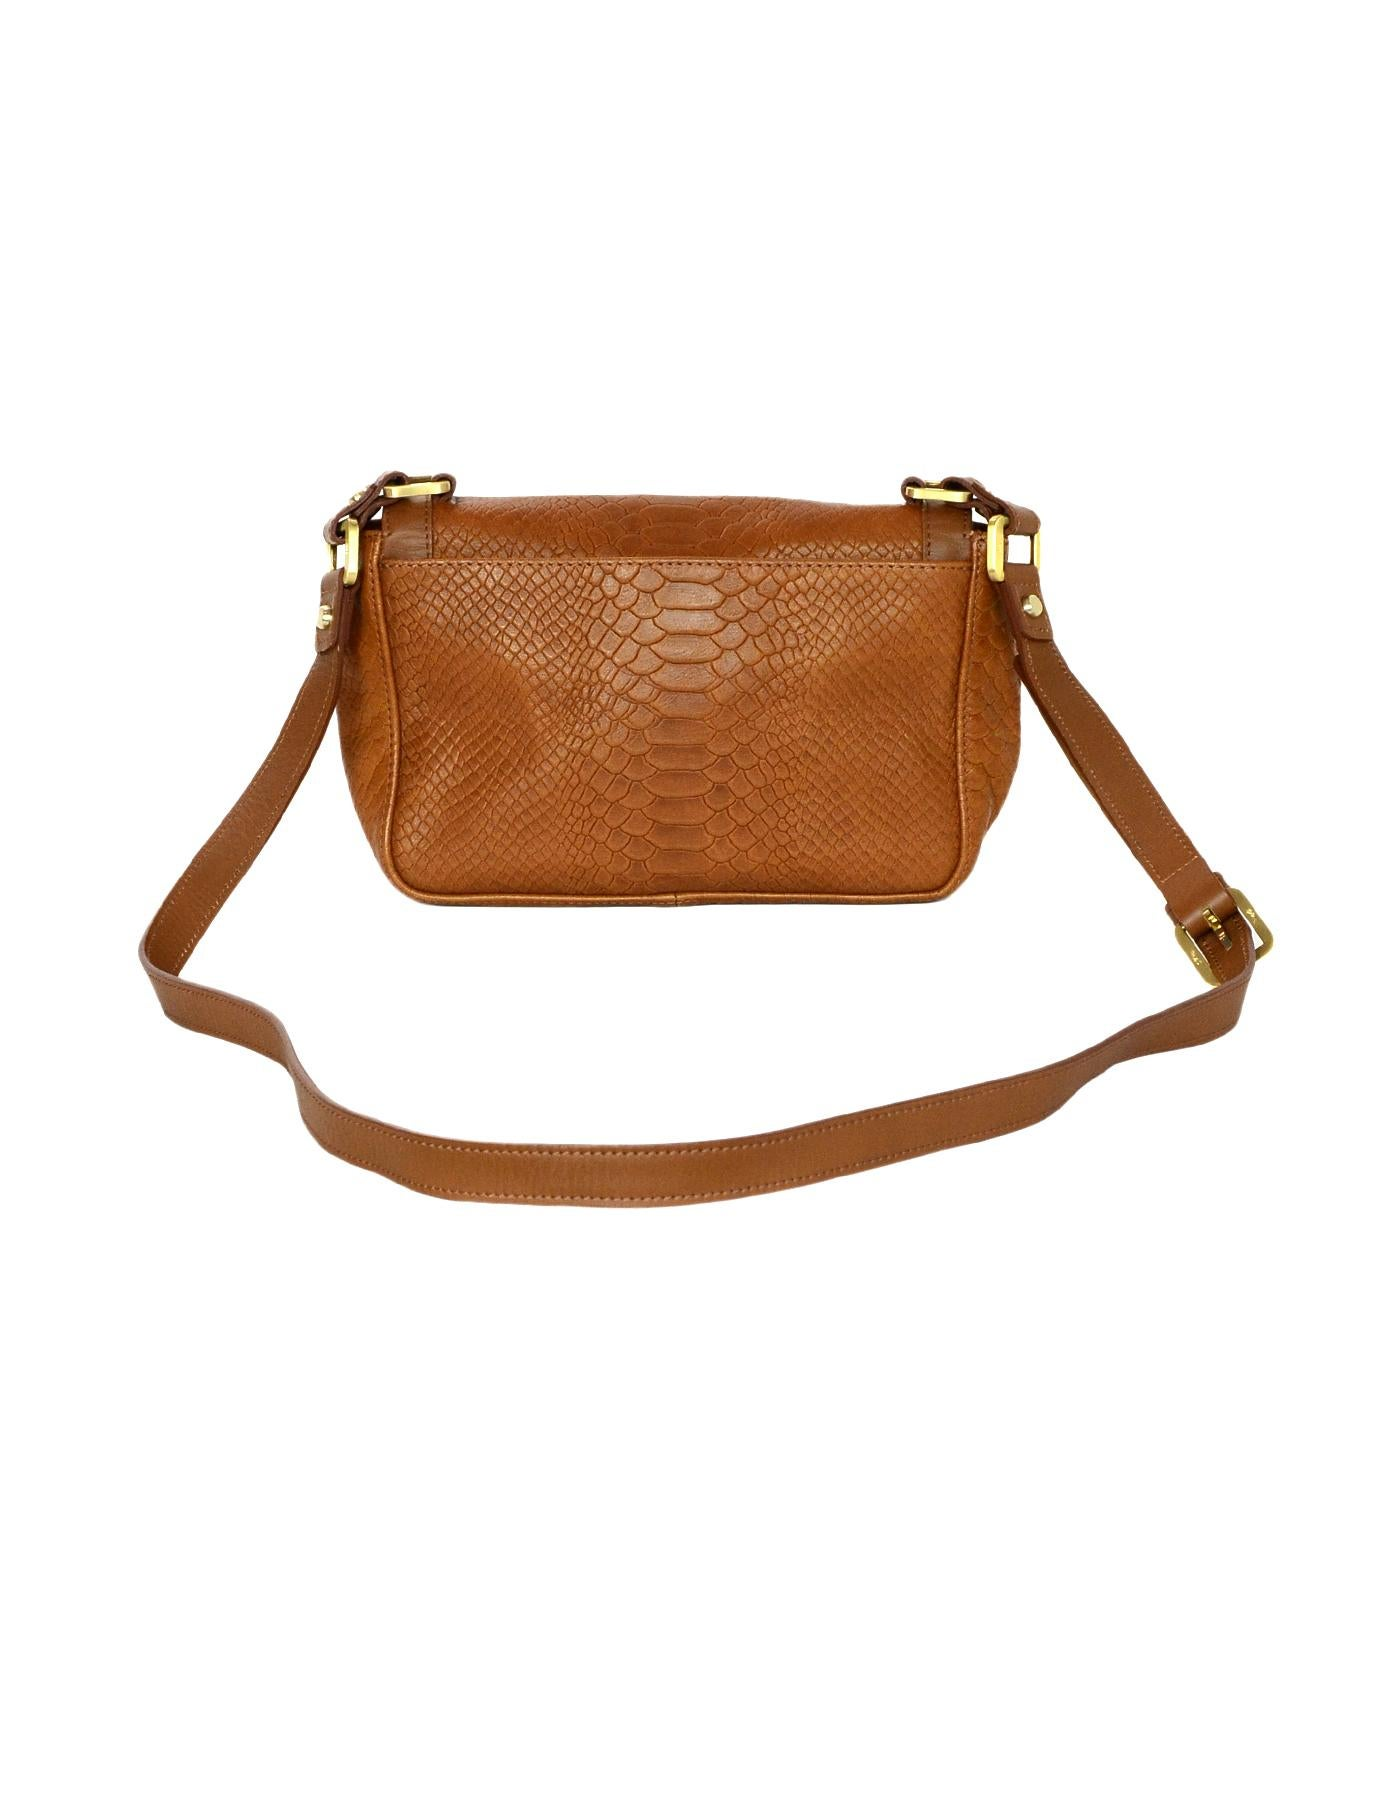 7cb38545d7 Longchamp Tan Leather Embossed Python Gatsby Flap Crossbody Bag For Sale at  1stdibs